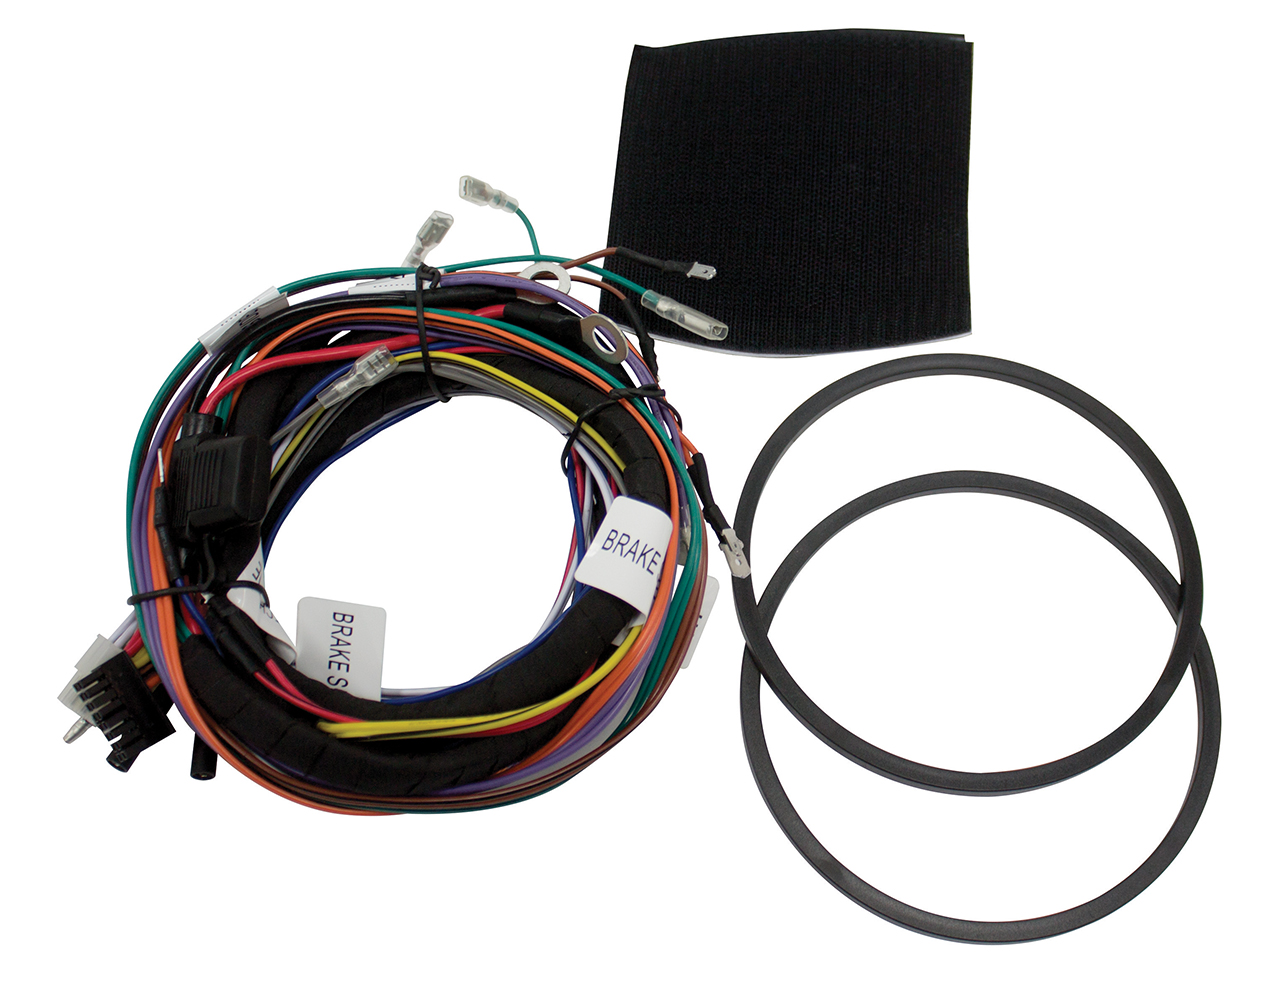 hight resolution of hdwh4 aftermarket 4 channel harley davidson wiring harness for use